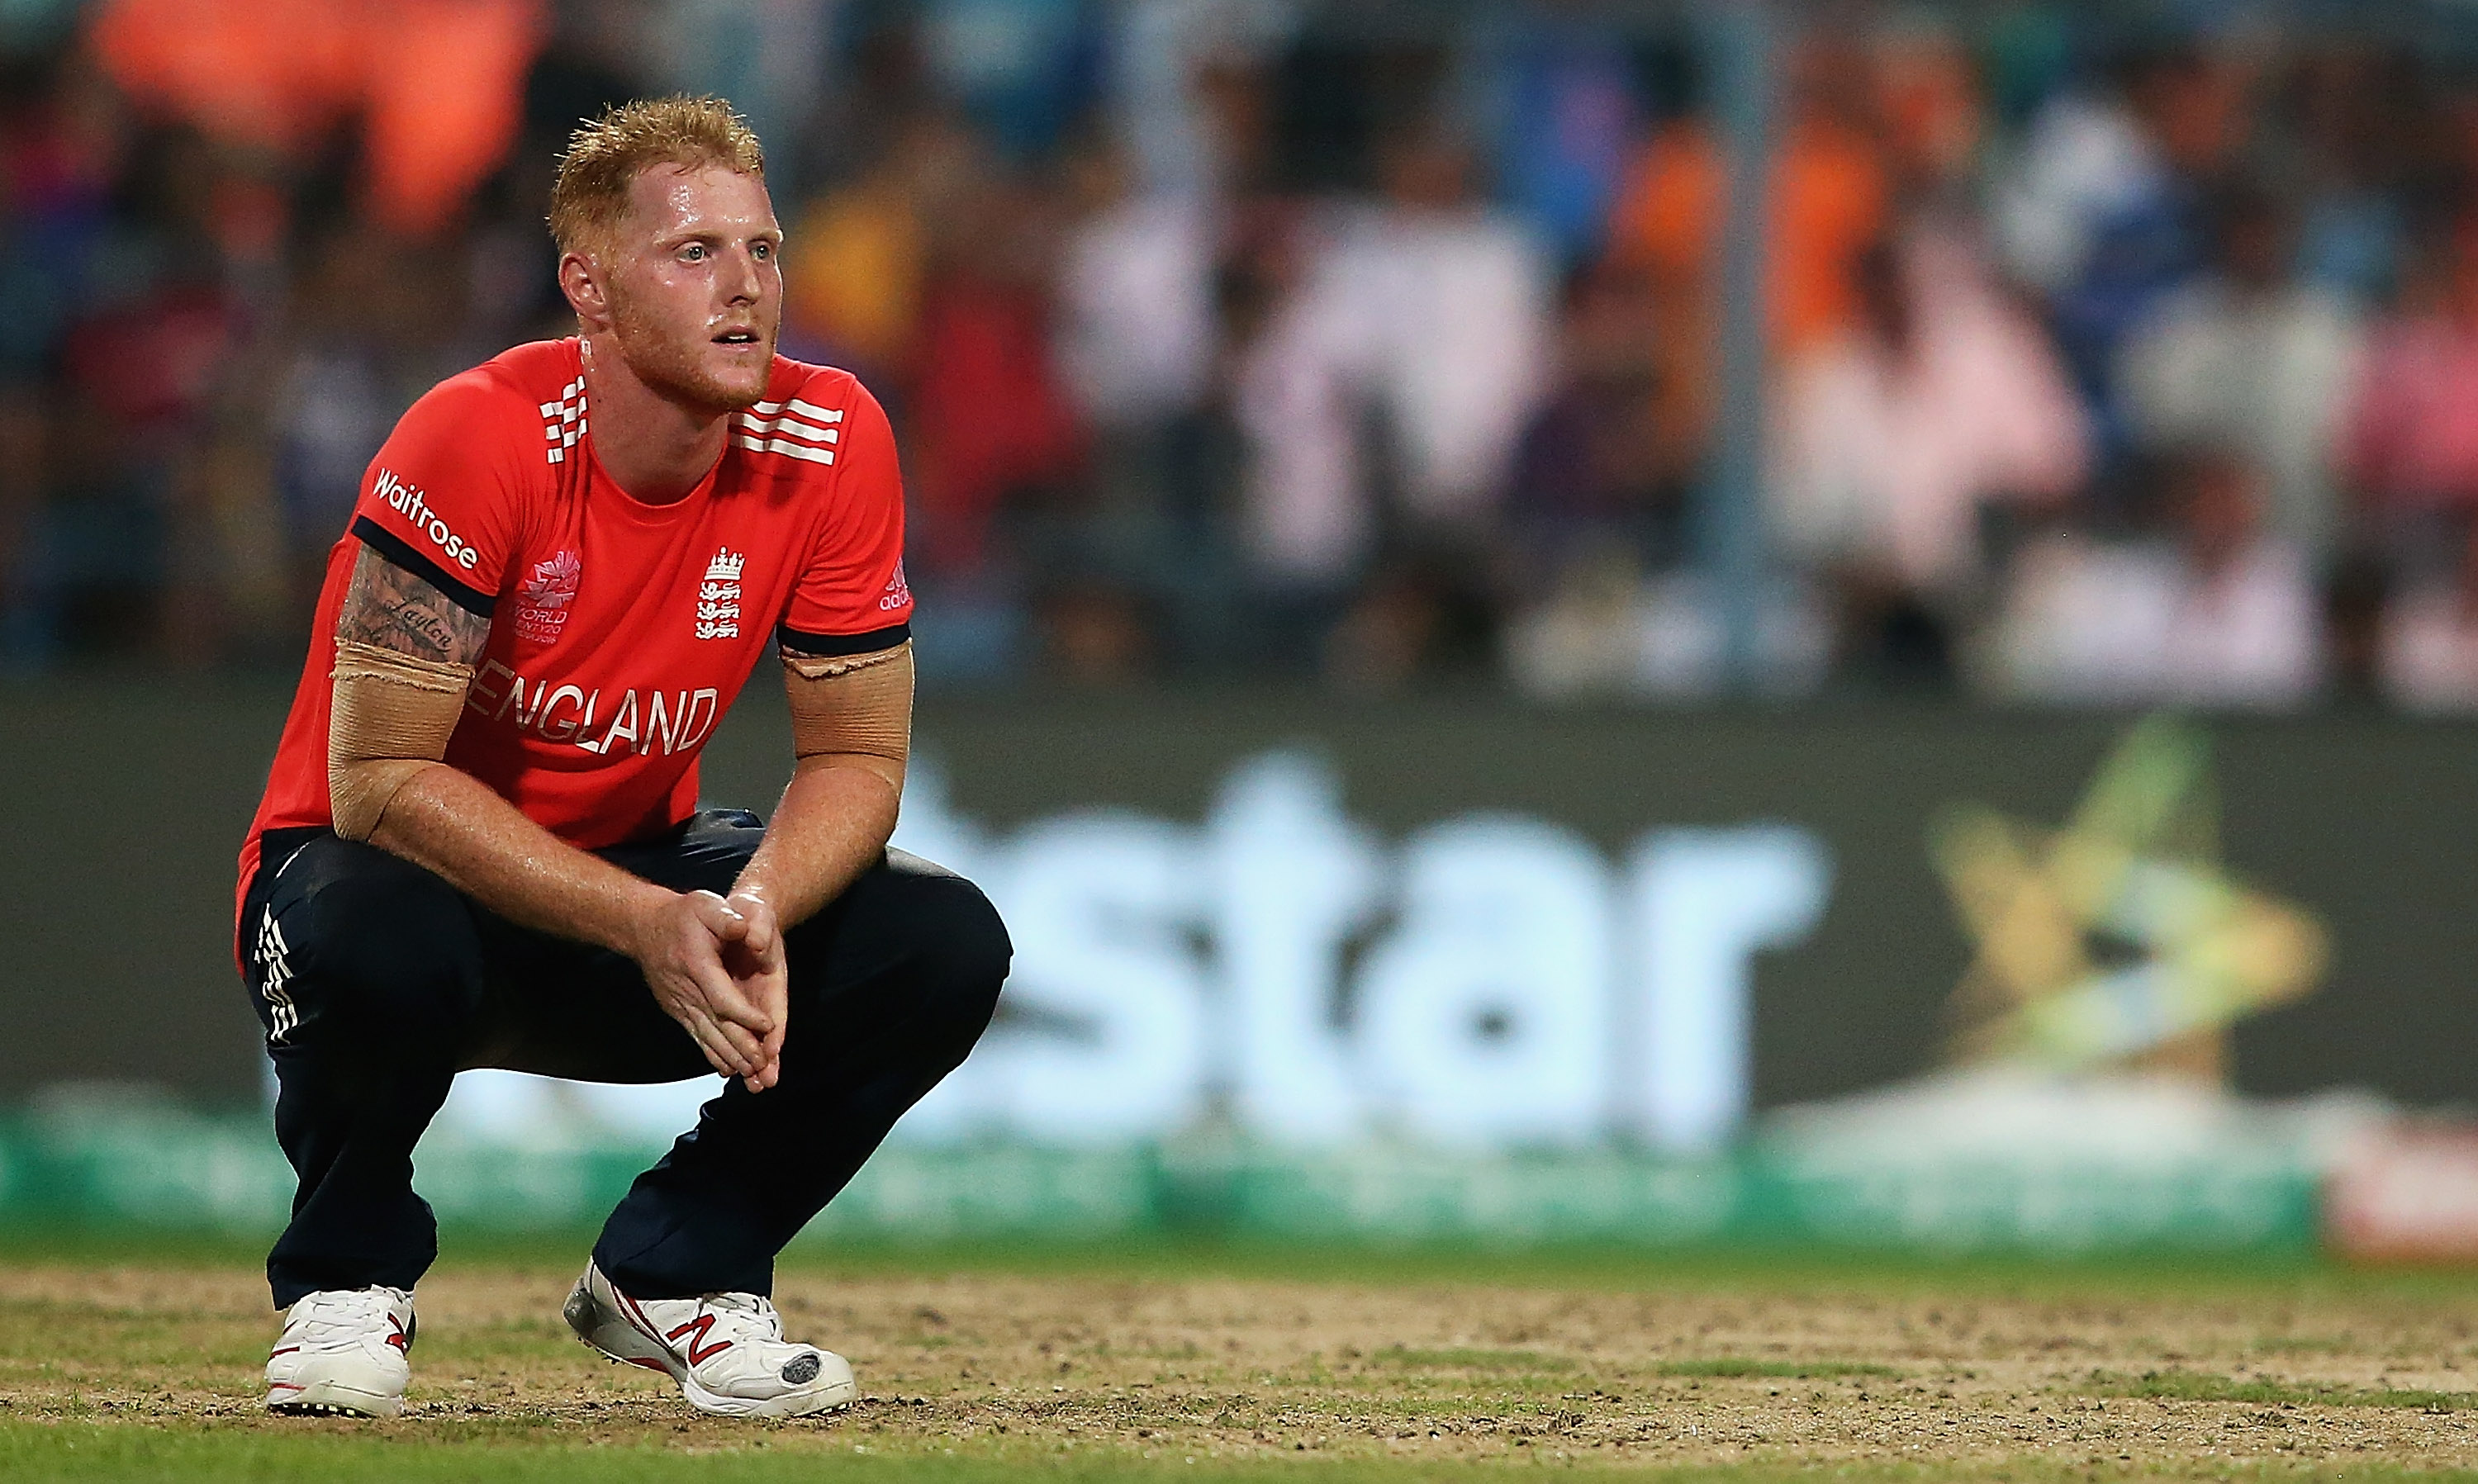 In Pictures: England cricket team lose T20 Cricket World Cup to the West Indies by four wickets